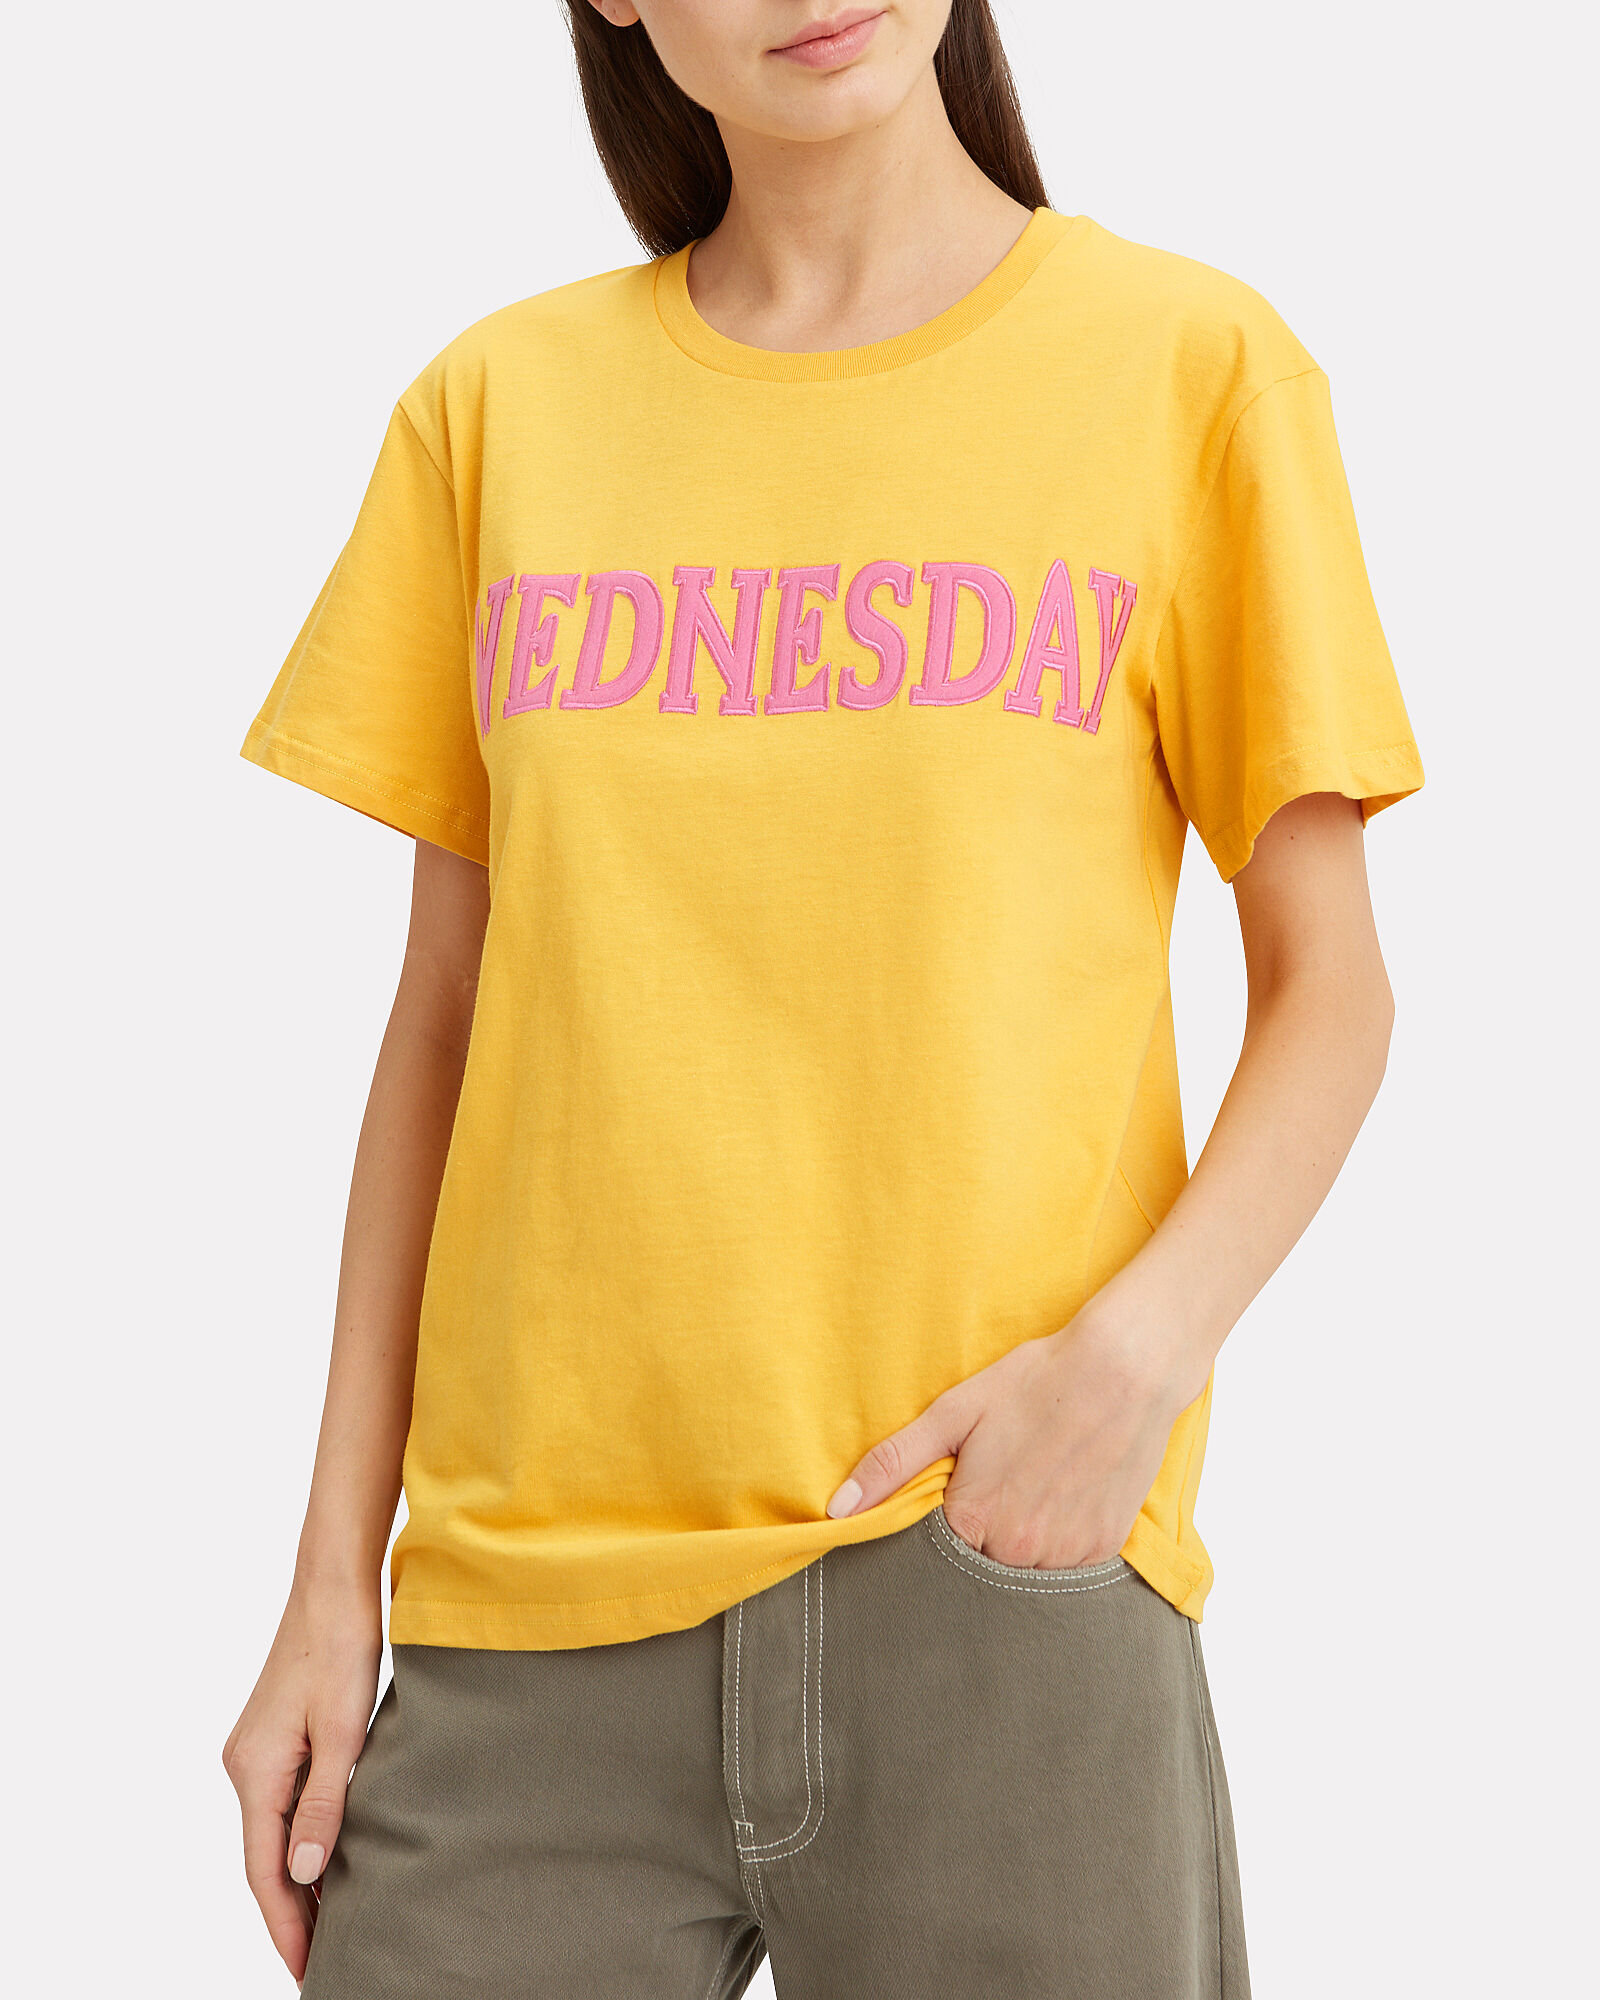 Wednesday Yellow T-Shirt, YELLOW, hi-res